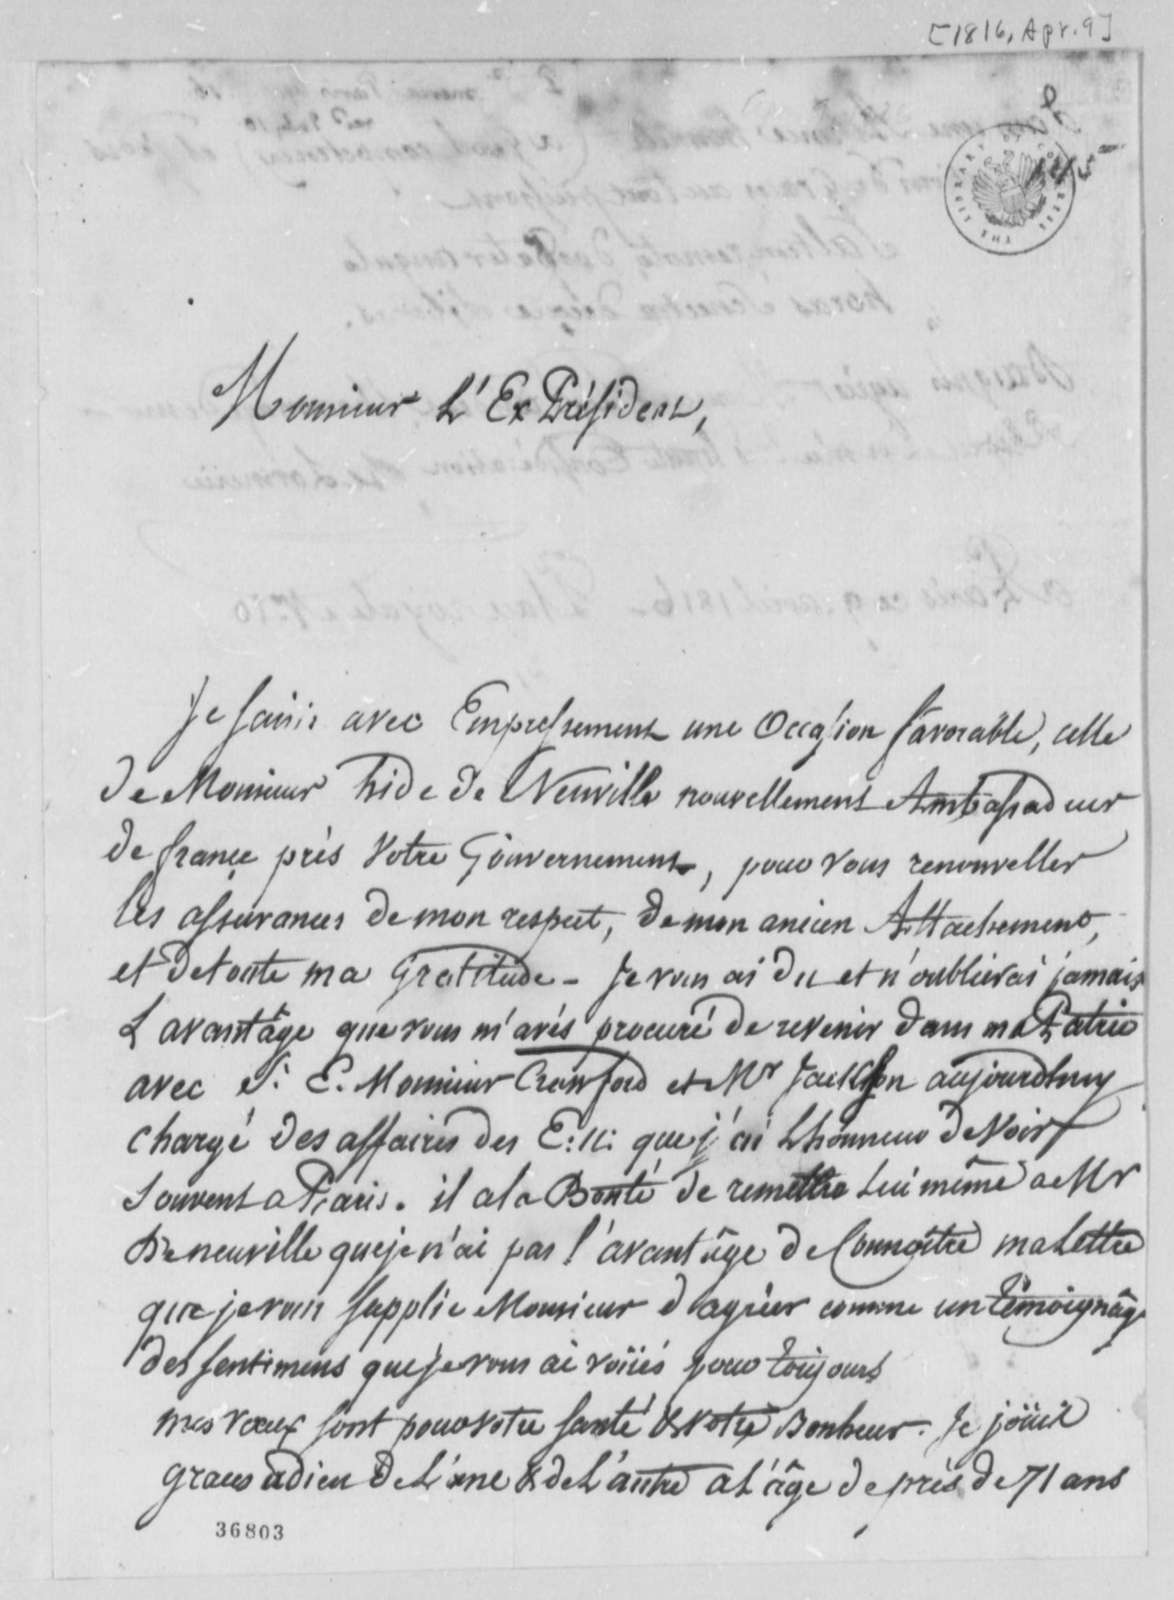 De Lormerie to Thomas Jefferson, April 9, 1816, in French